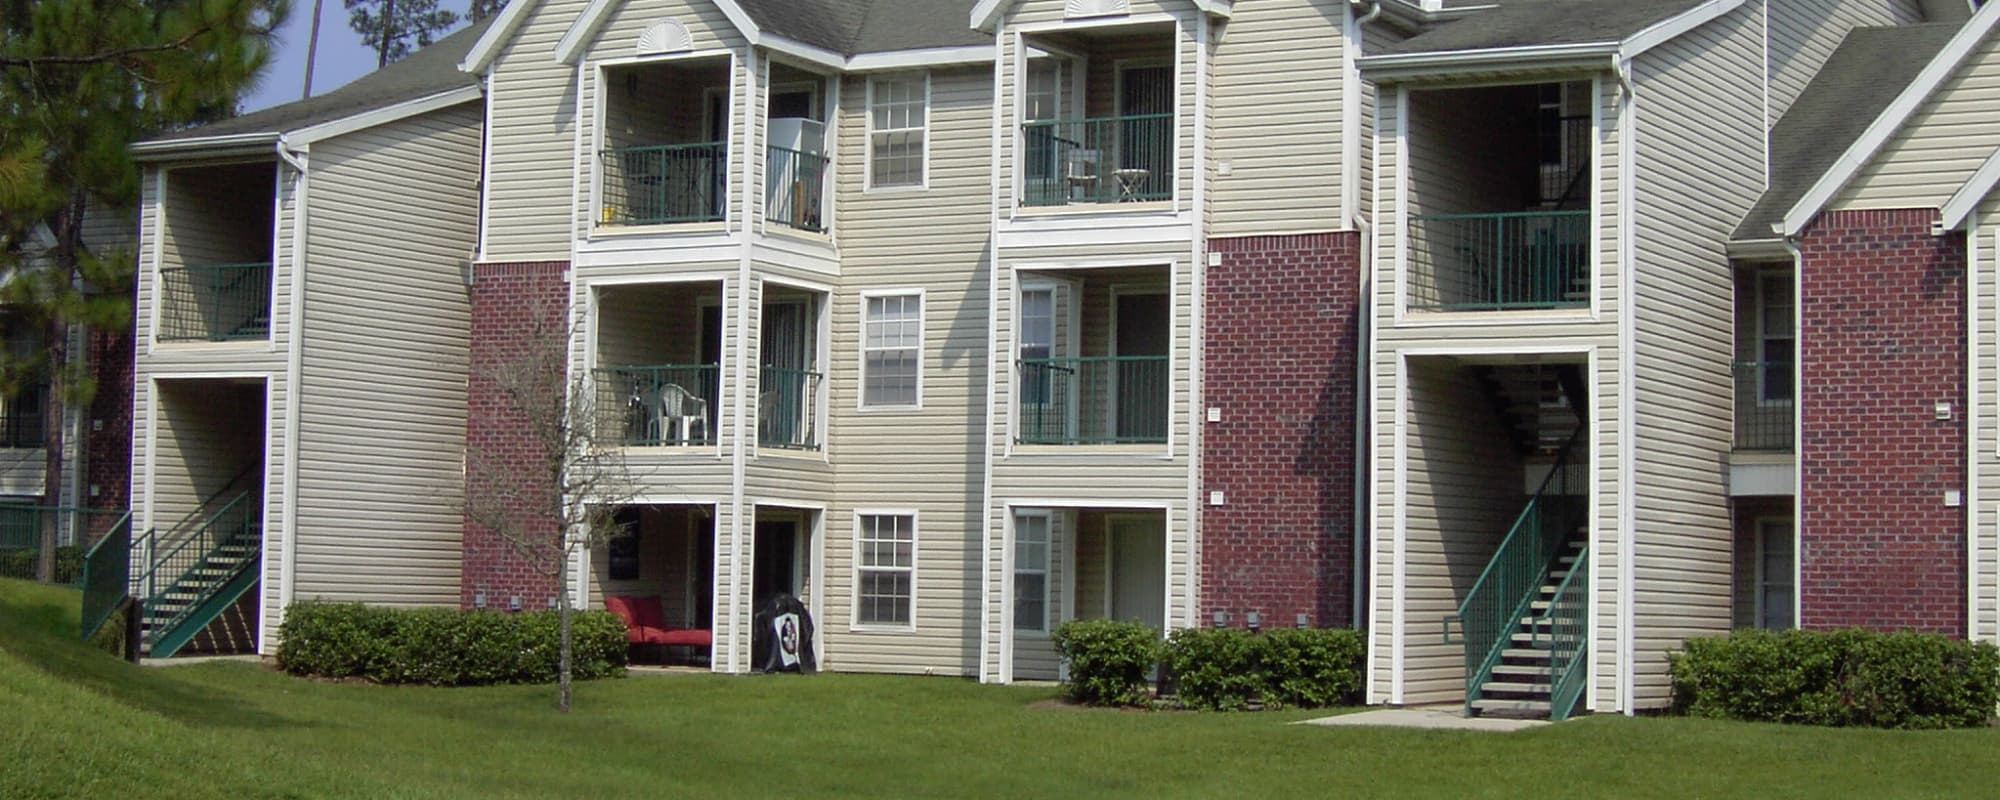 Polos on Park offers apartments with balconies in Tallahassee, Florida